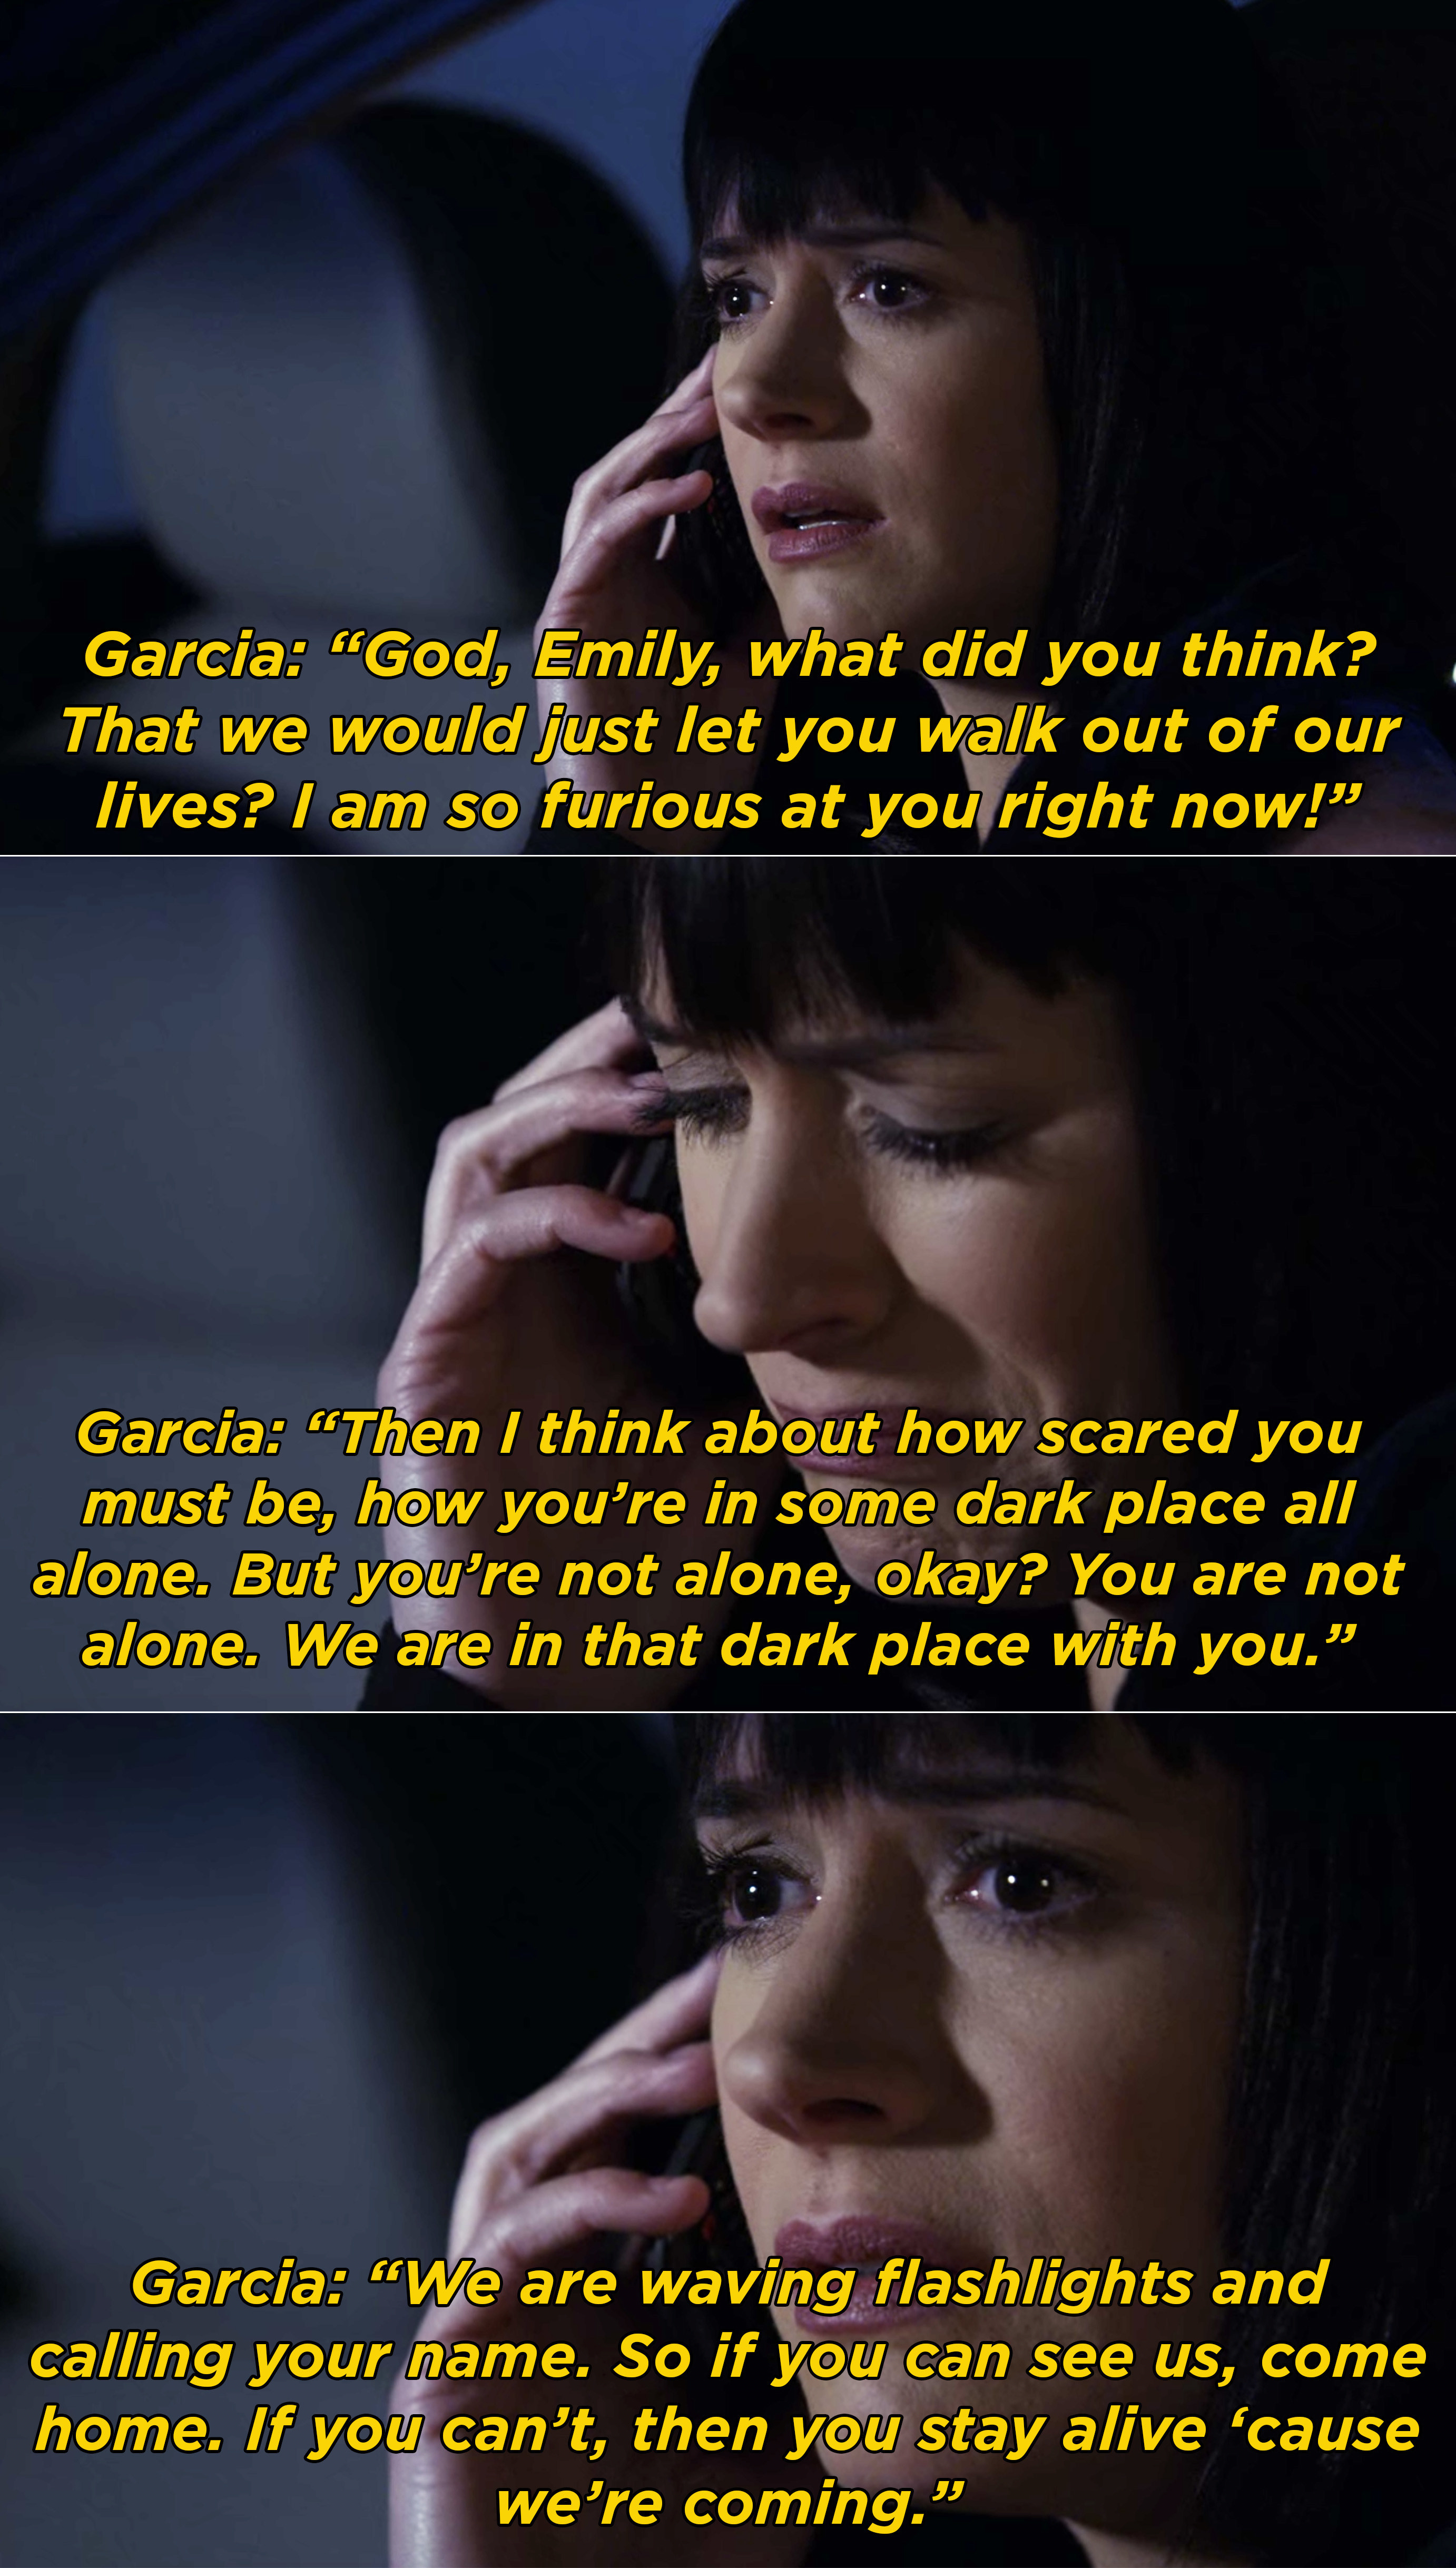 Garcia telling Emily that they are in this dark place with her and they are coming to help her